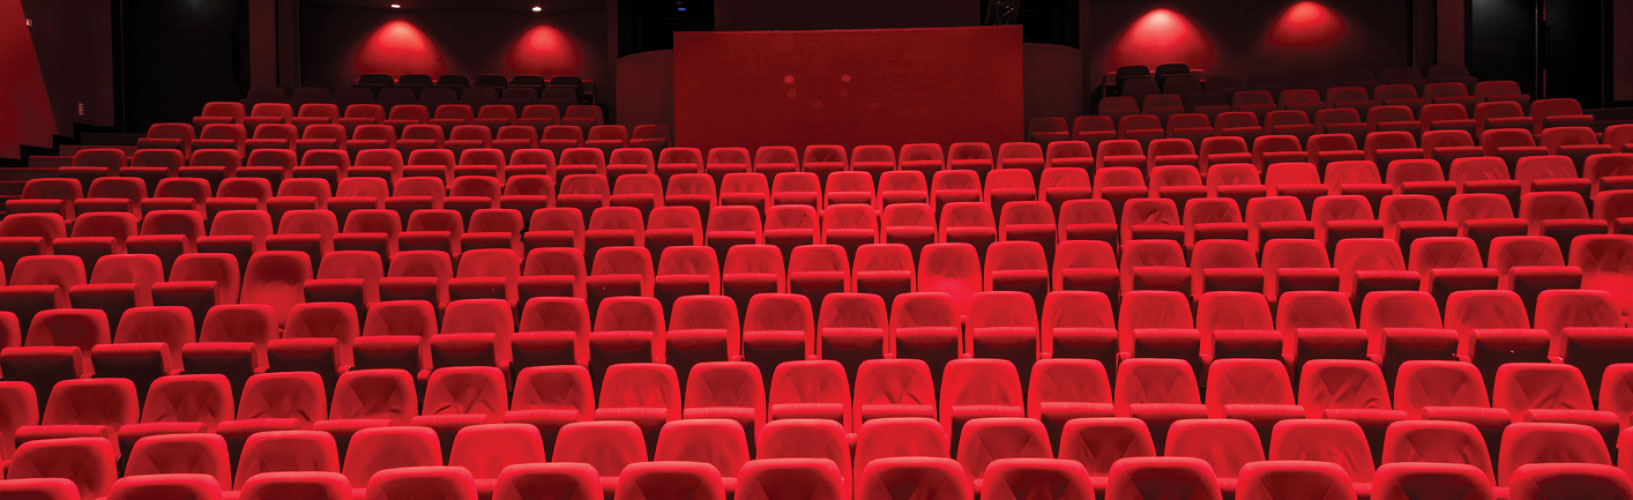 Empty red seats in a large theater.